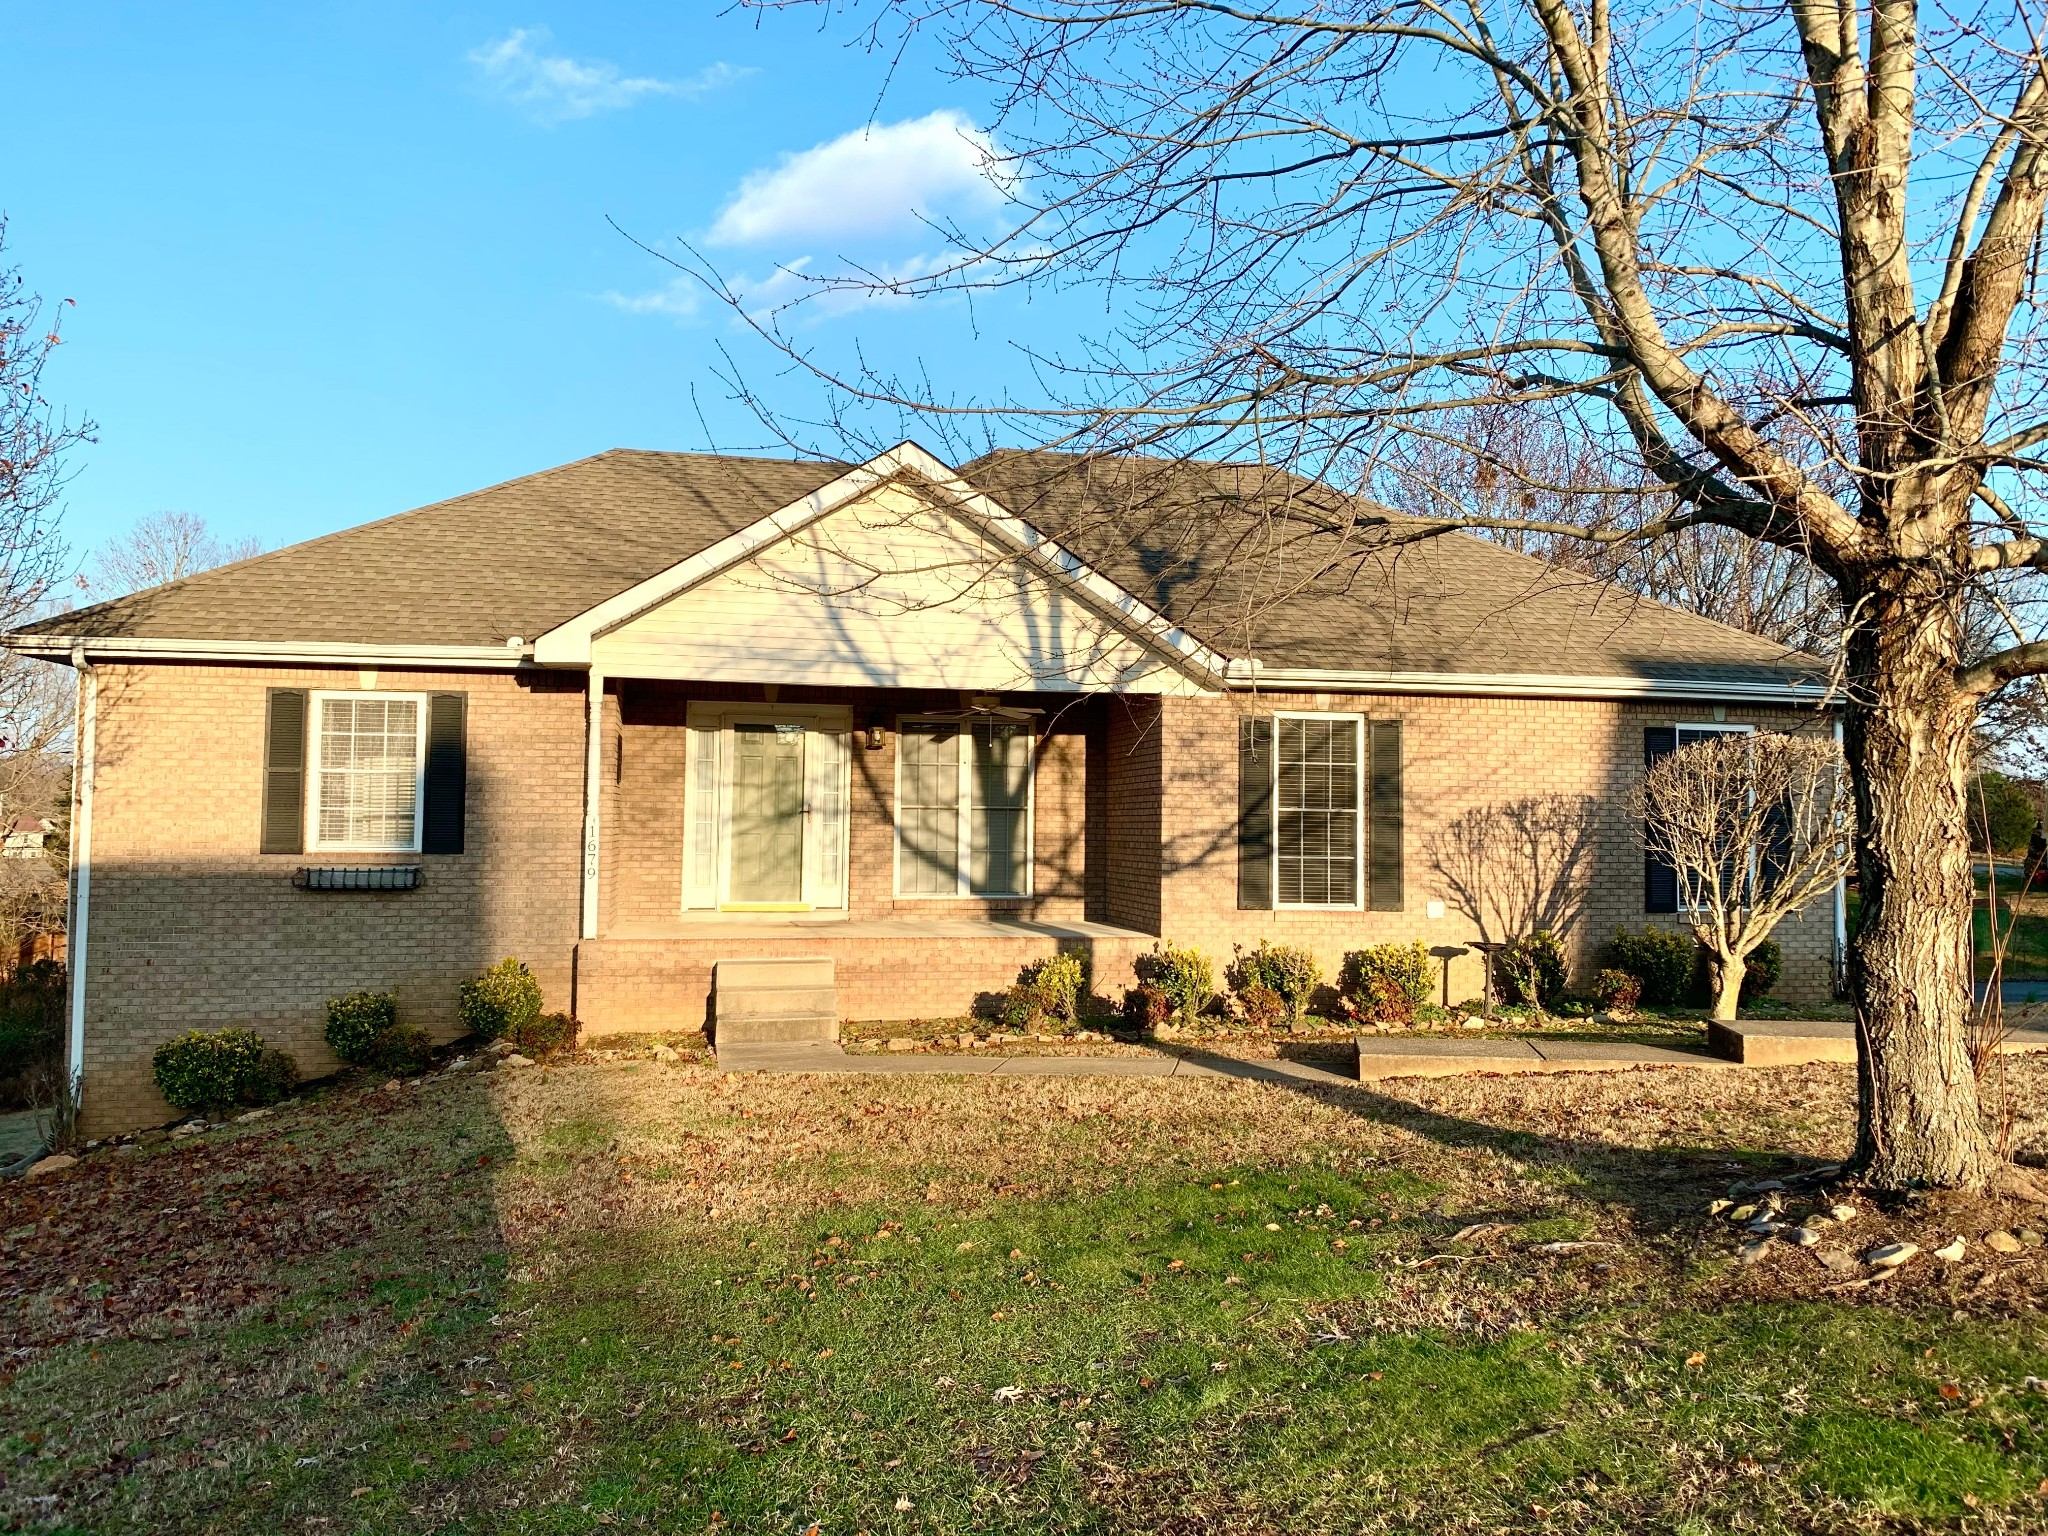 1679 Barrywood Cir E Property Photo - Clarksville, TN real estate listing